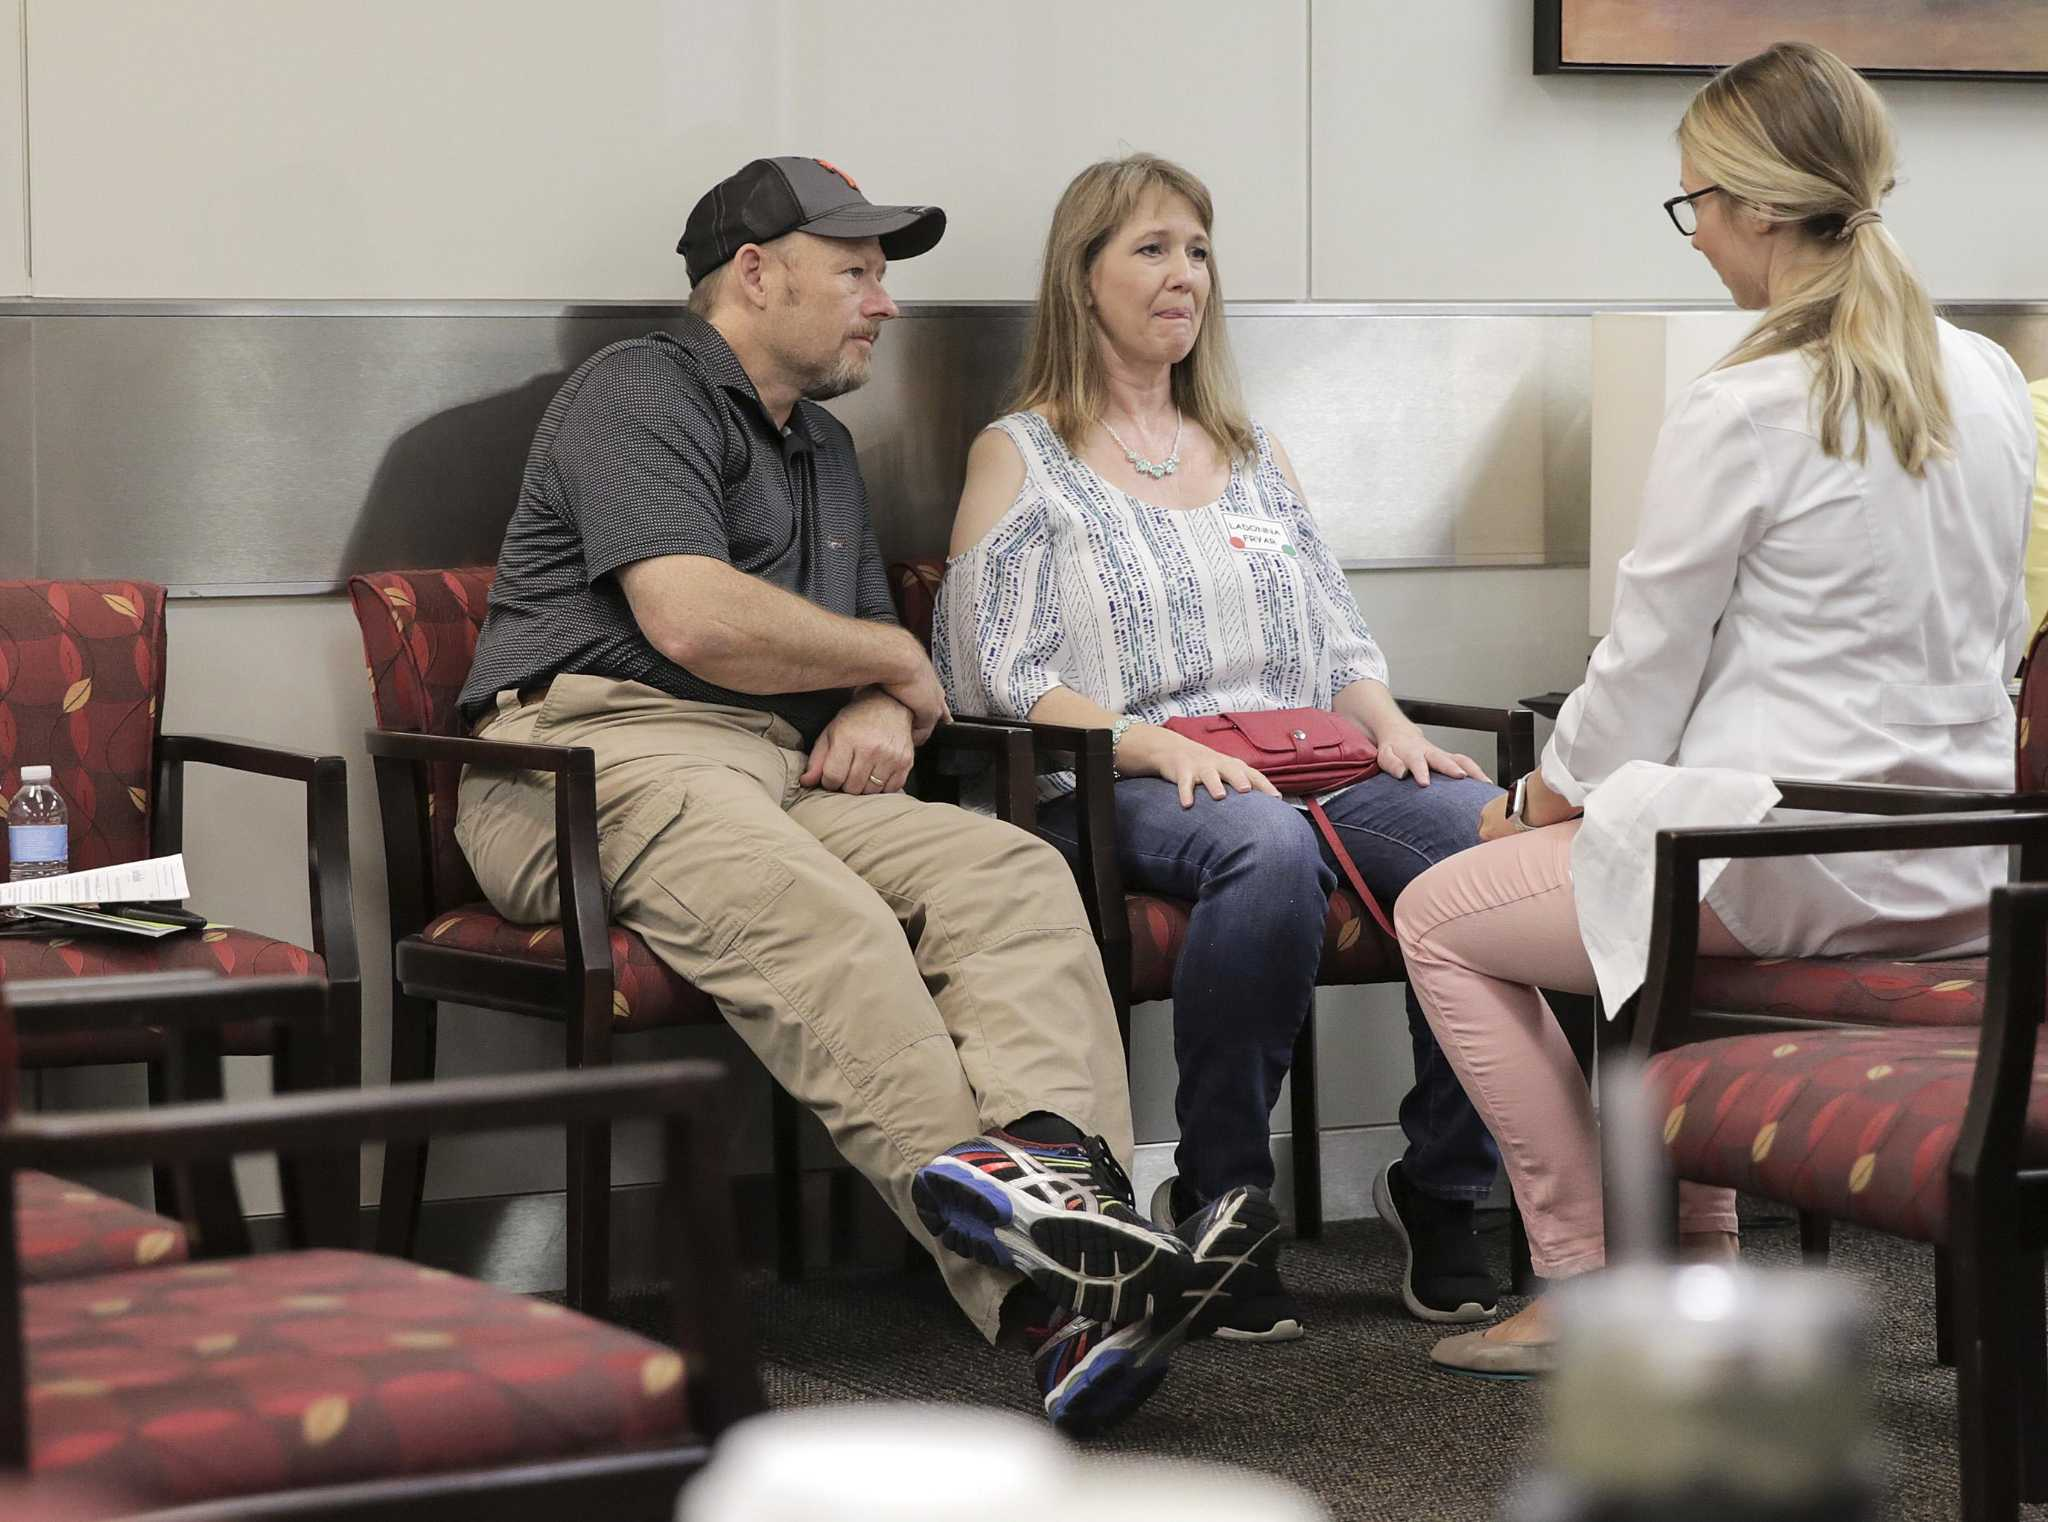 houstonchronicle.com - Todd Ackerman - New immunotherapy treatment funded by the Ice Bucket Challenge may help ALS patients